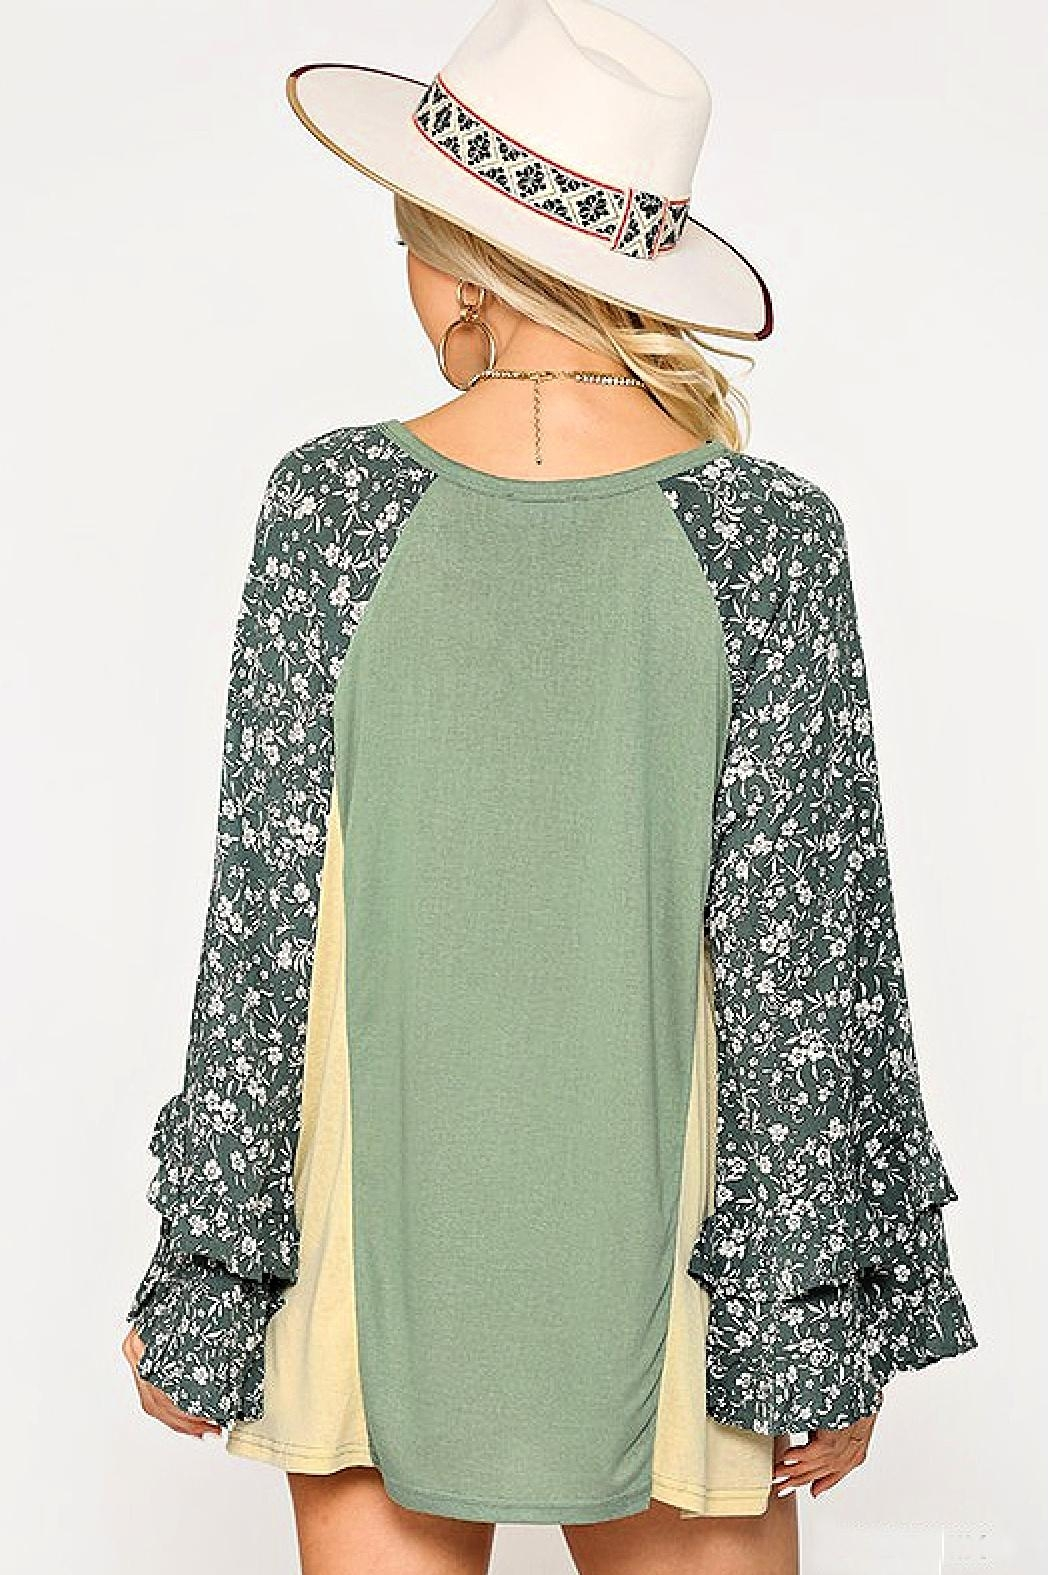 GiGiO Ditsy-Floral Color-Block Top - Front Full Image